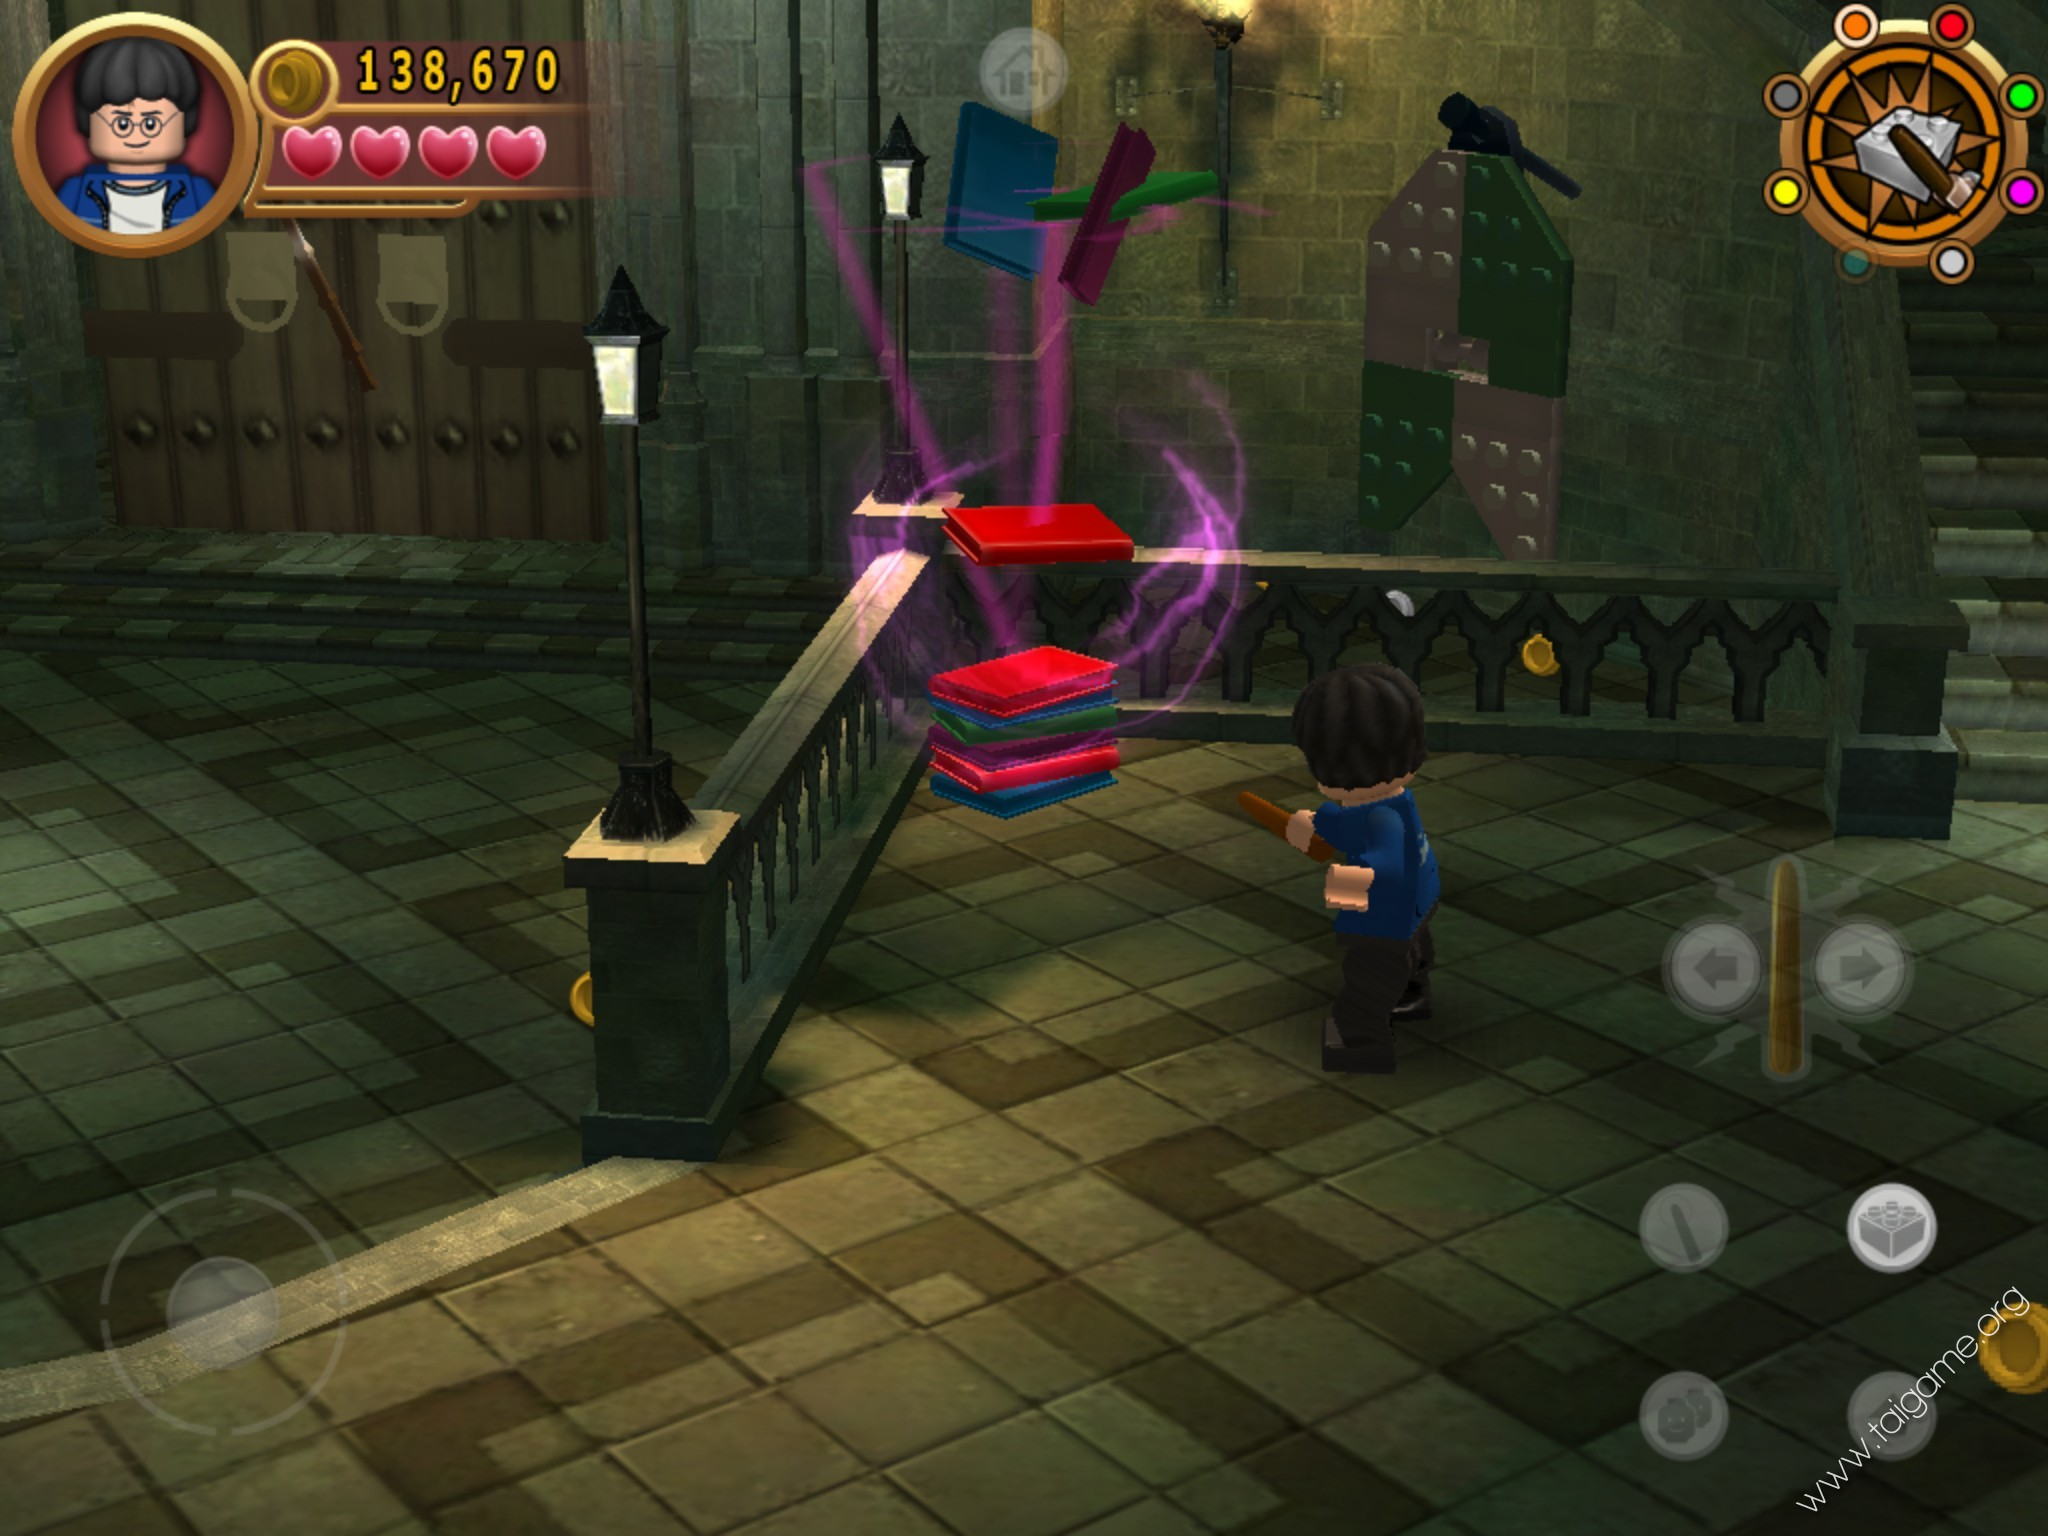 download harry potter and the deathly hallows part 1 game pc free